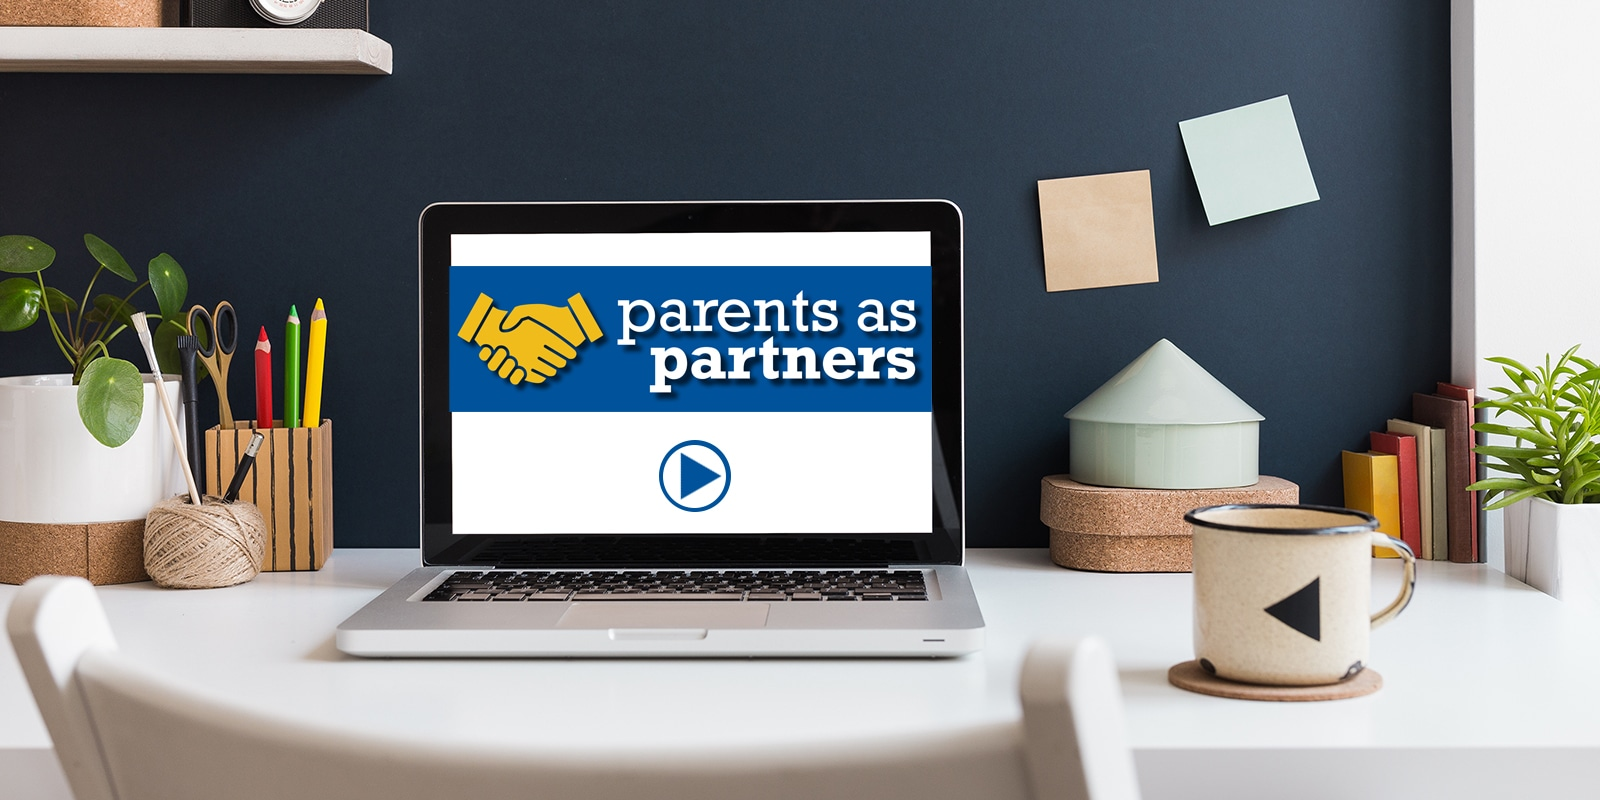 Parents as Partners virtual meeting on a laptop